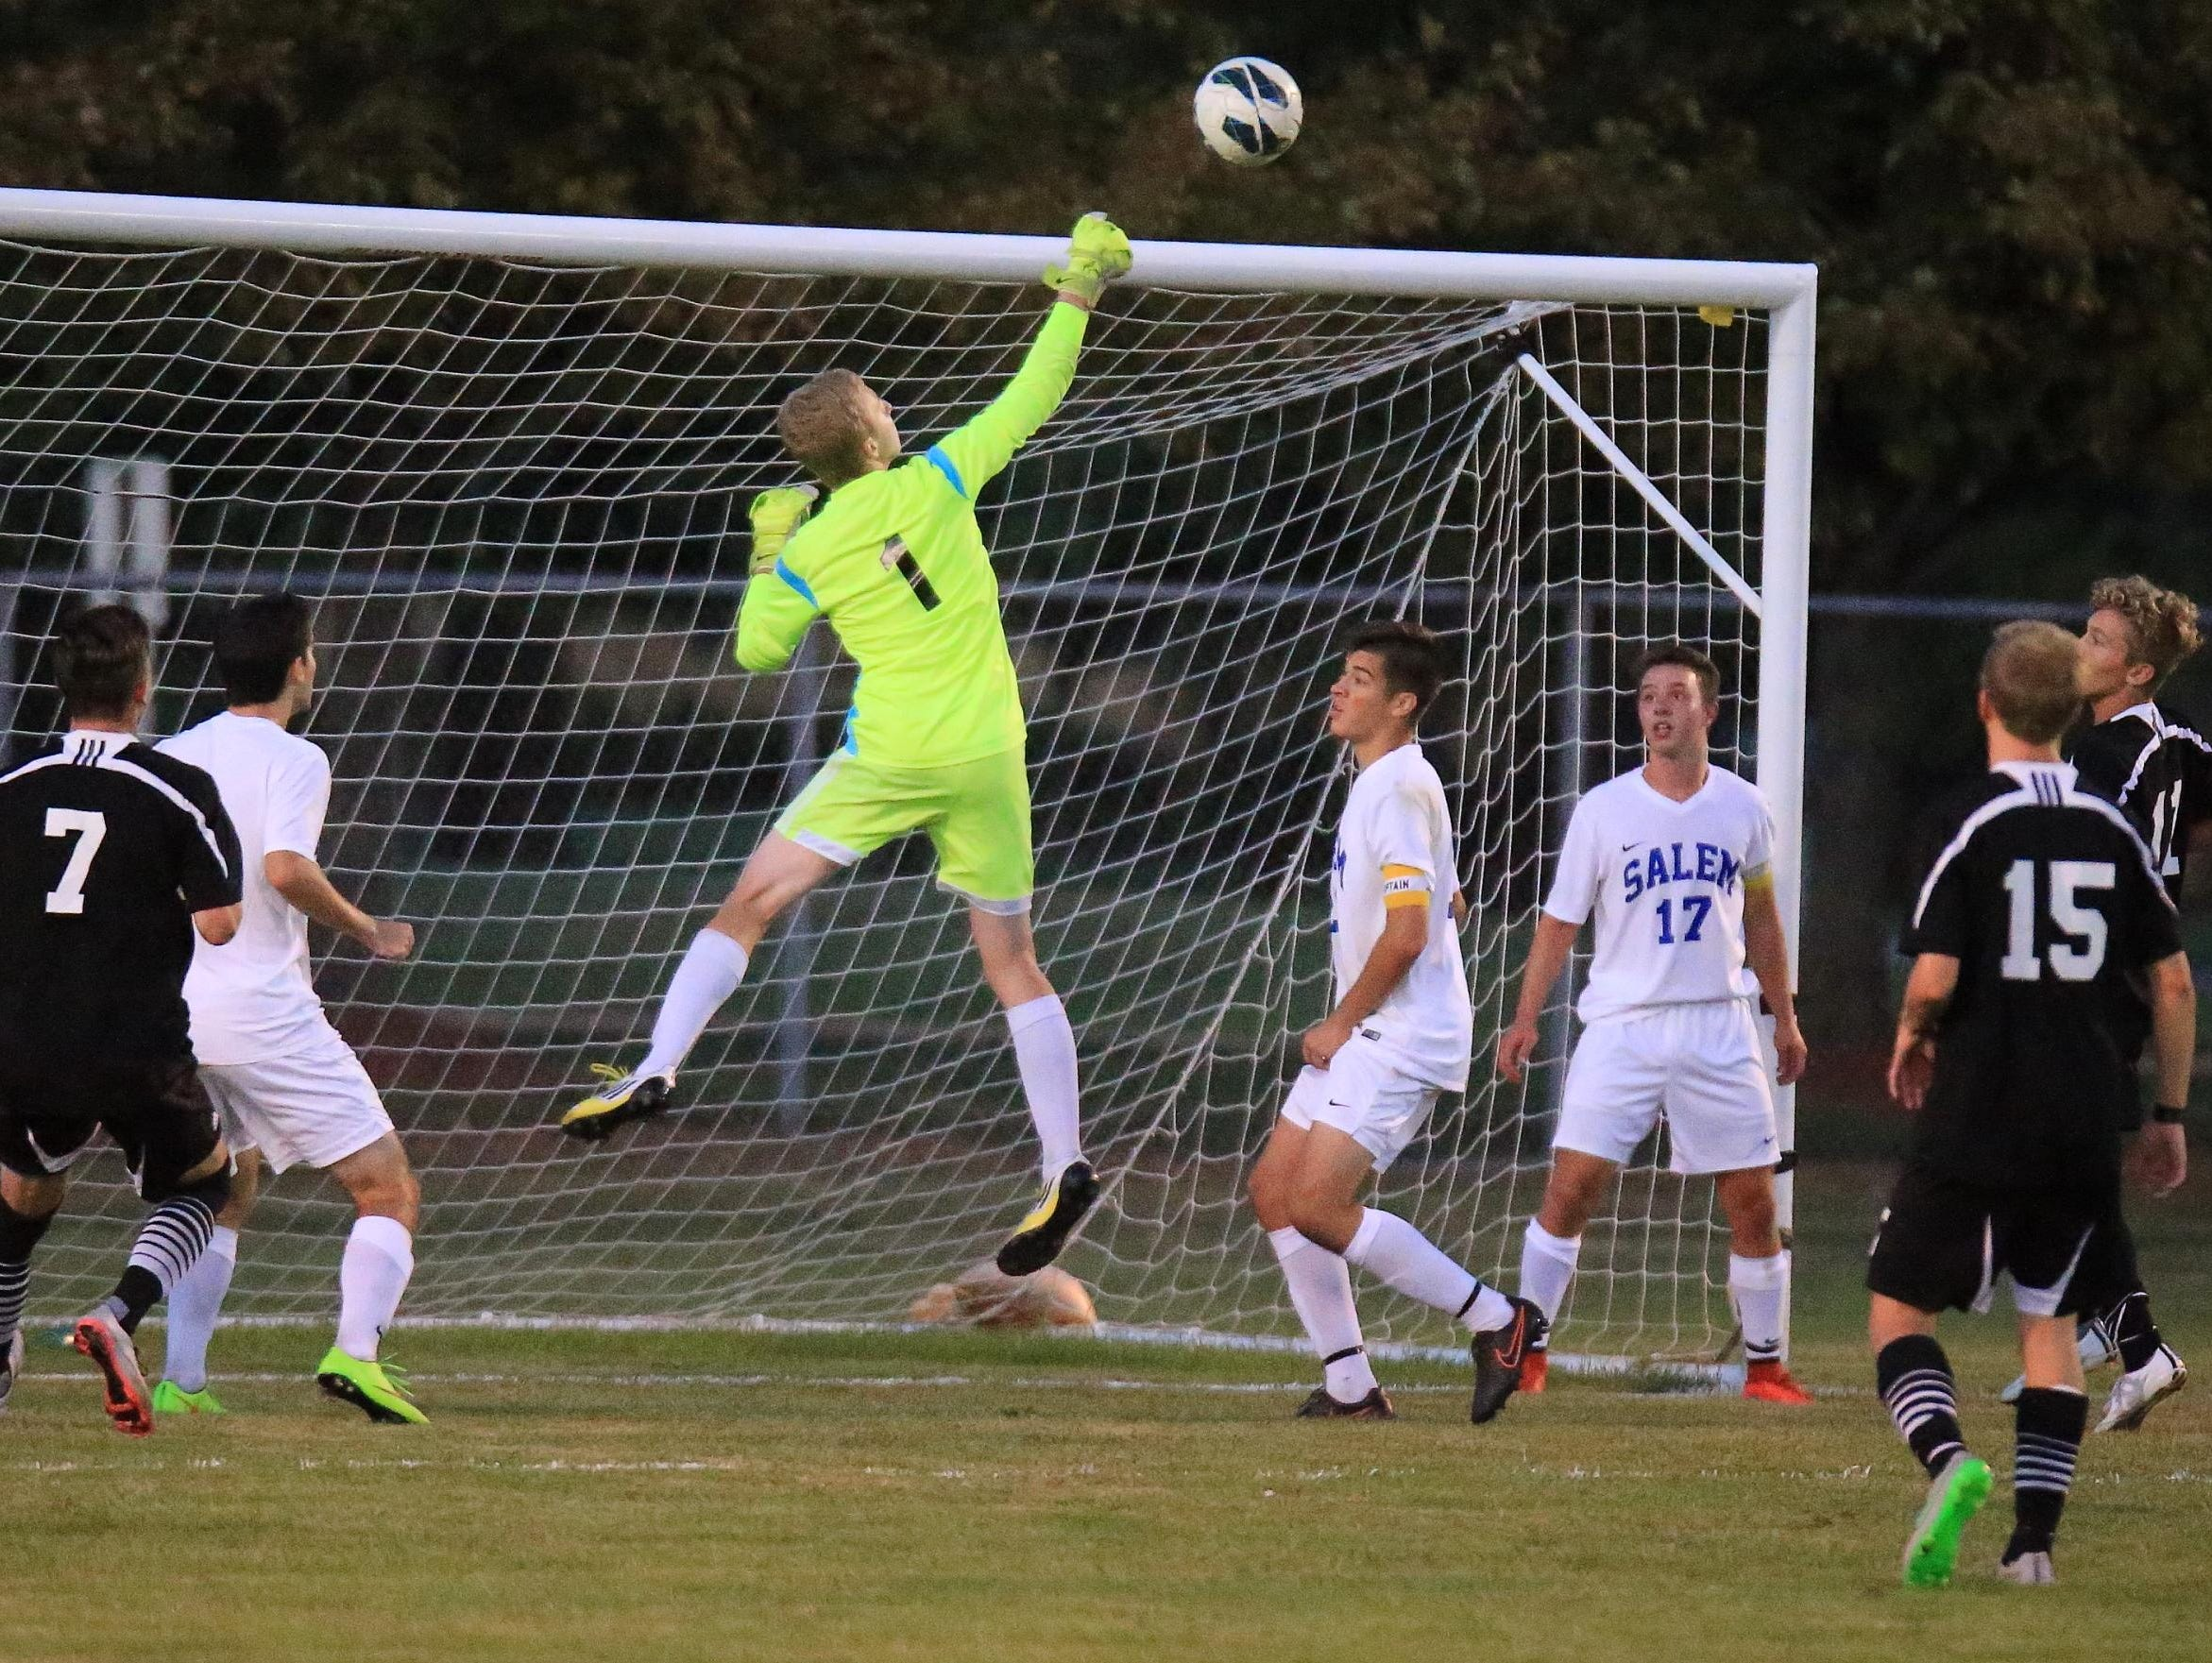 Showing some serious hops to deflect a Plymouth shot over the net is Salem goalie Karson Gregory (No. 1). Among other players pictured is Rocks midfielder Max Kummer (No. 17) and Plymouth forwards Mike Blake (No. 7) and Keaton Hegarty (No. 15).